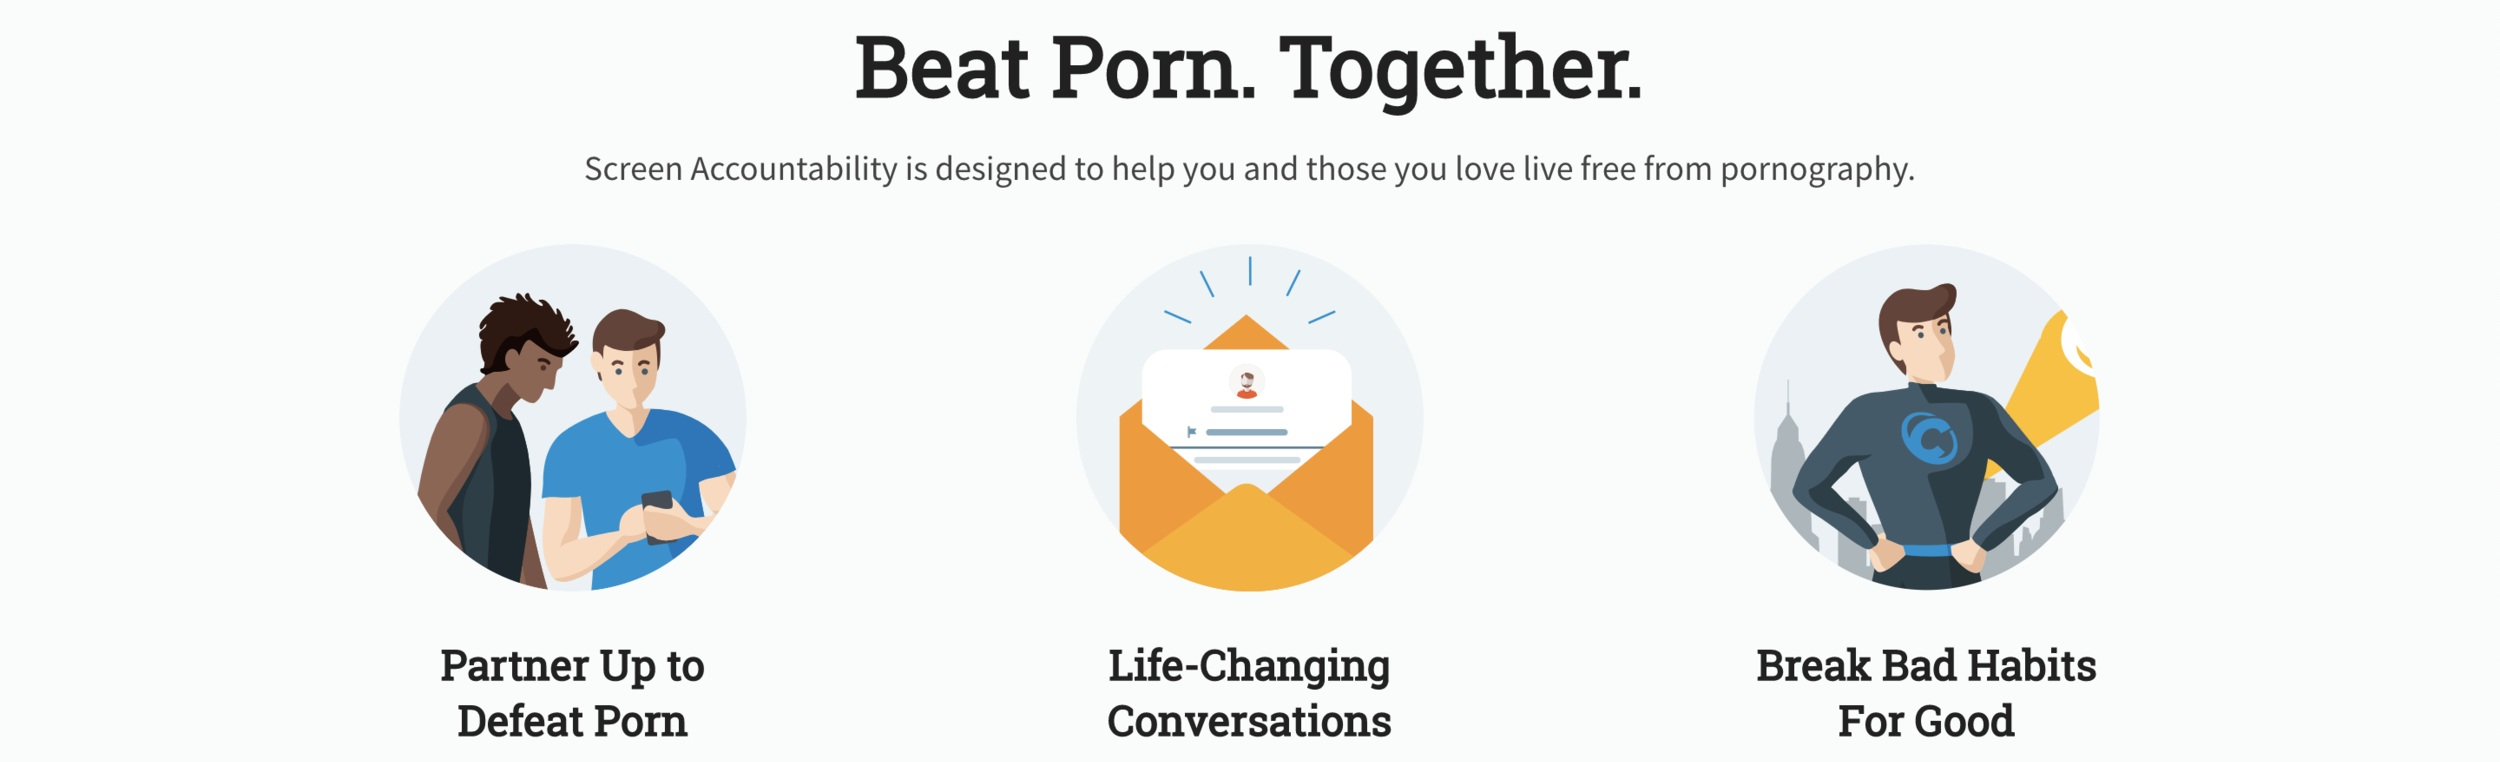 Beat porn with accountability software